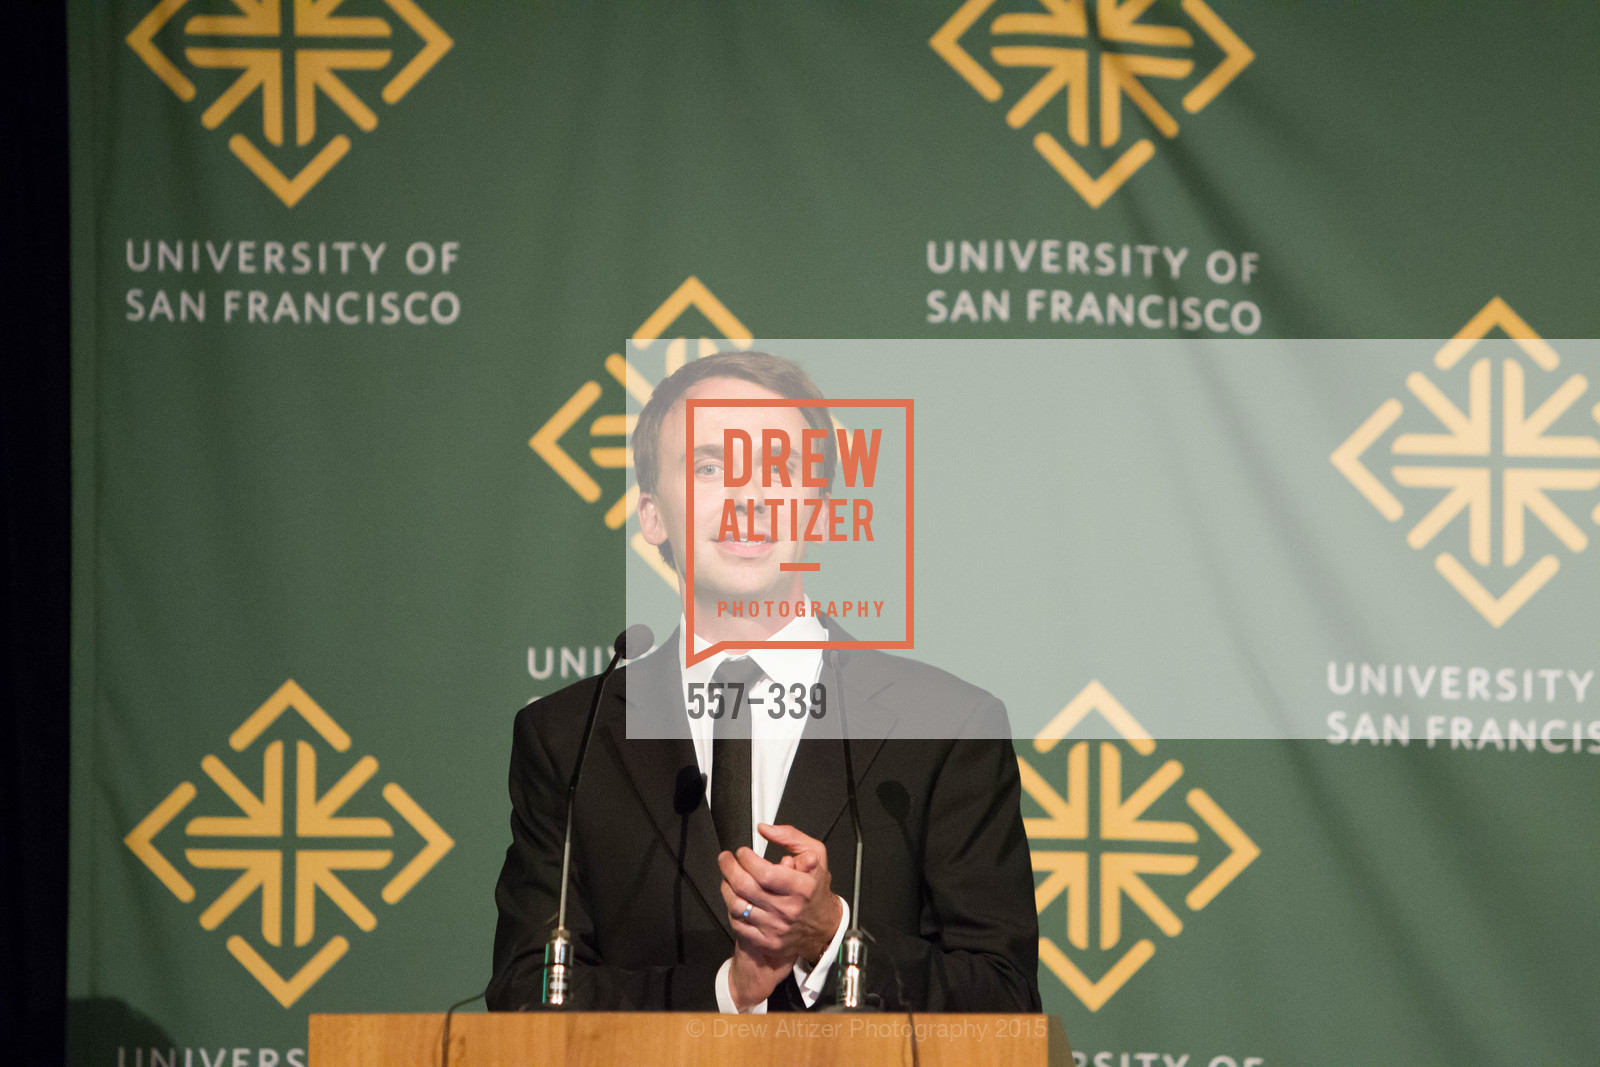 Greg Vaisberg, University of San Francisco Alumni Awards Gala 2015, University of San Francisco, October 2nd, 2015,Drew Altizer, Drew Altizer Photography, full-service event agency, private events, San Francisco photographer, photographer California